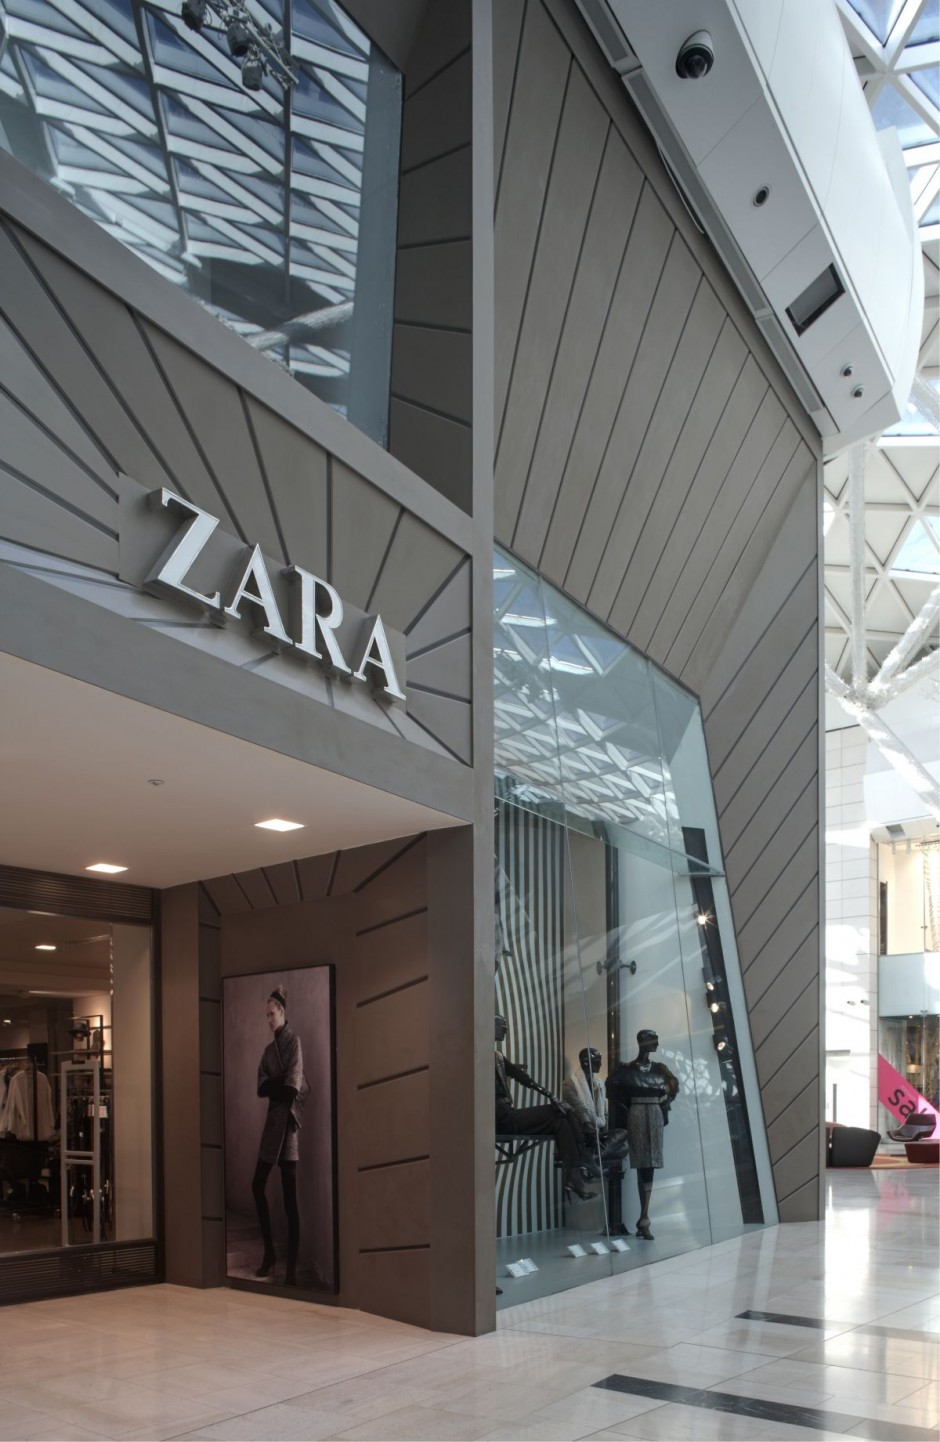 Zara Commercial Architecture